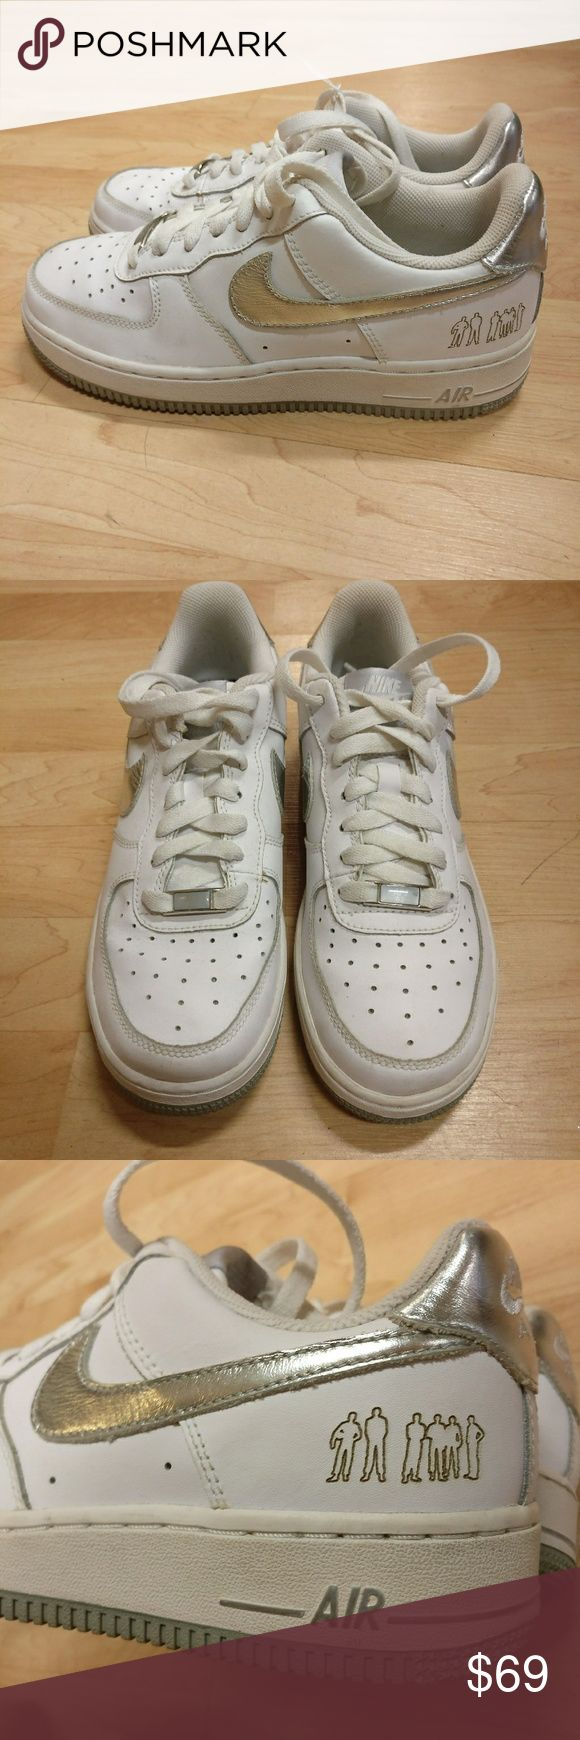 Nike Air Force 1 Premium Original Six 2006 Nike Air Force 1 Premium Sneakers Original Six 2006, over ten years old!  White & silver  In great condition, barely worn!  Size youth 6 Nike Shoes Sneakers